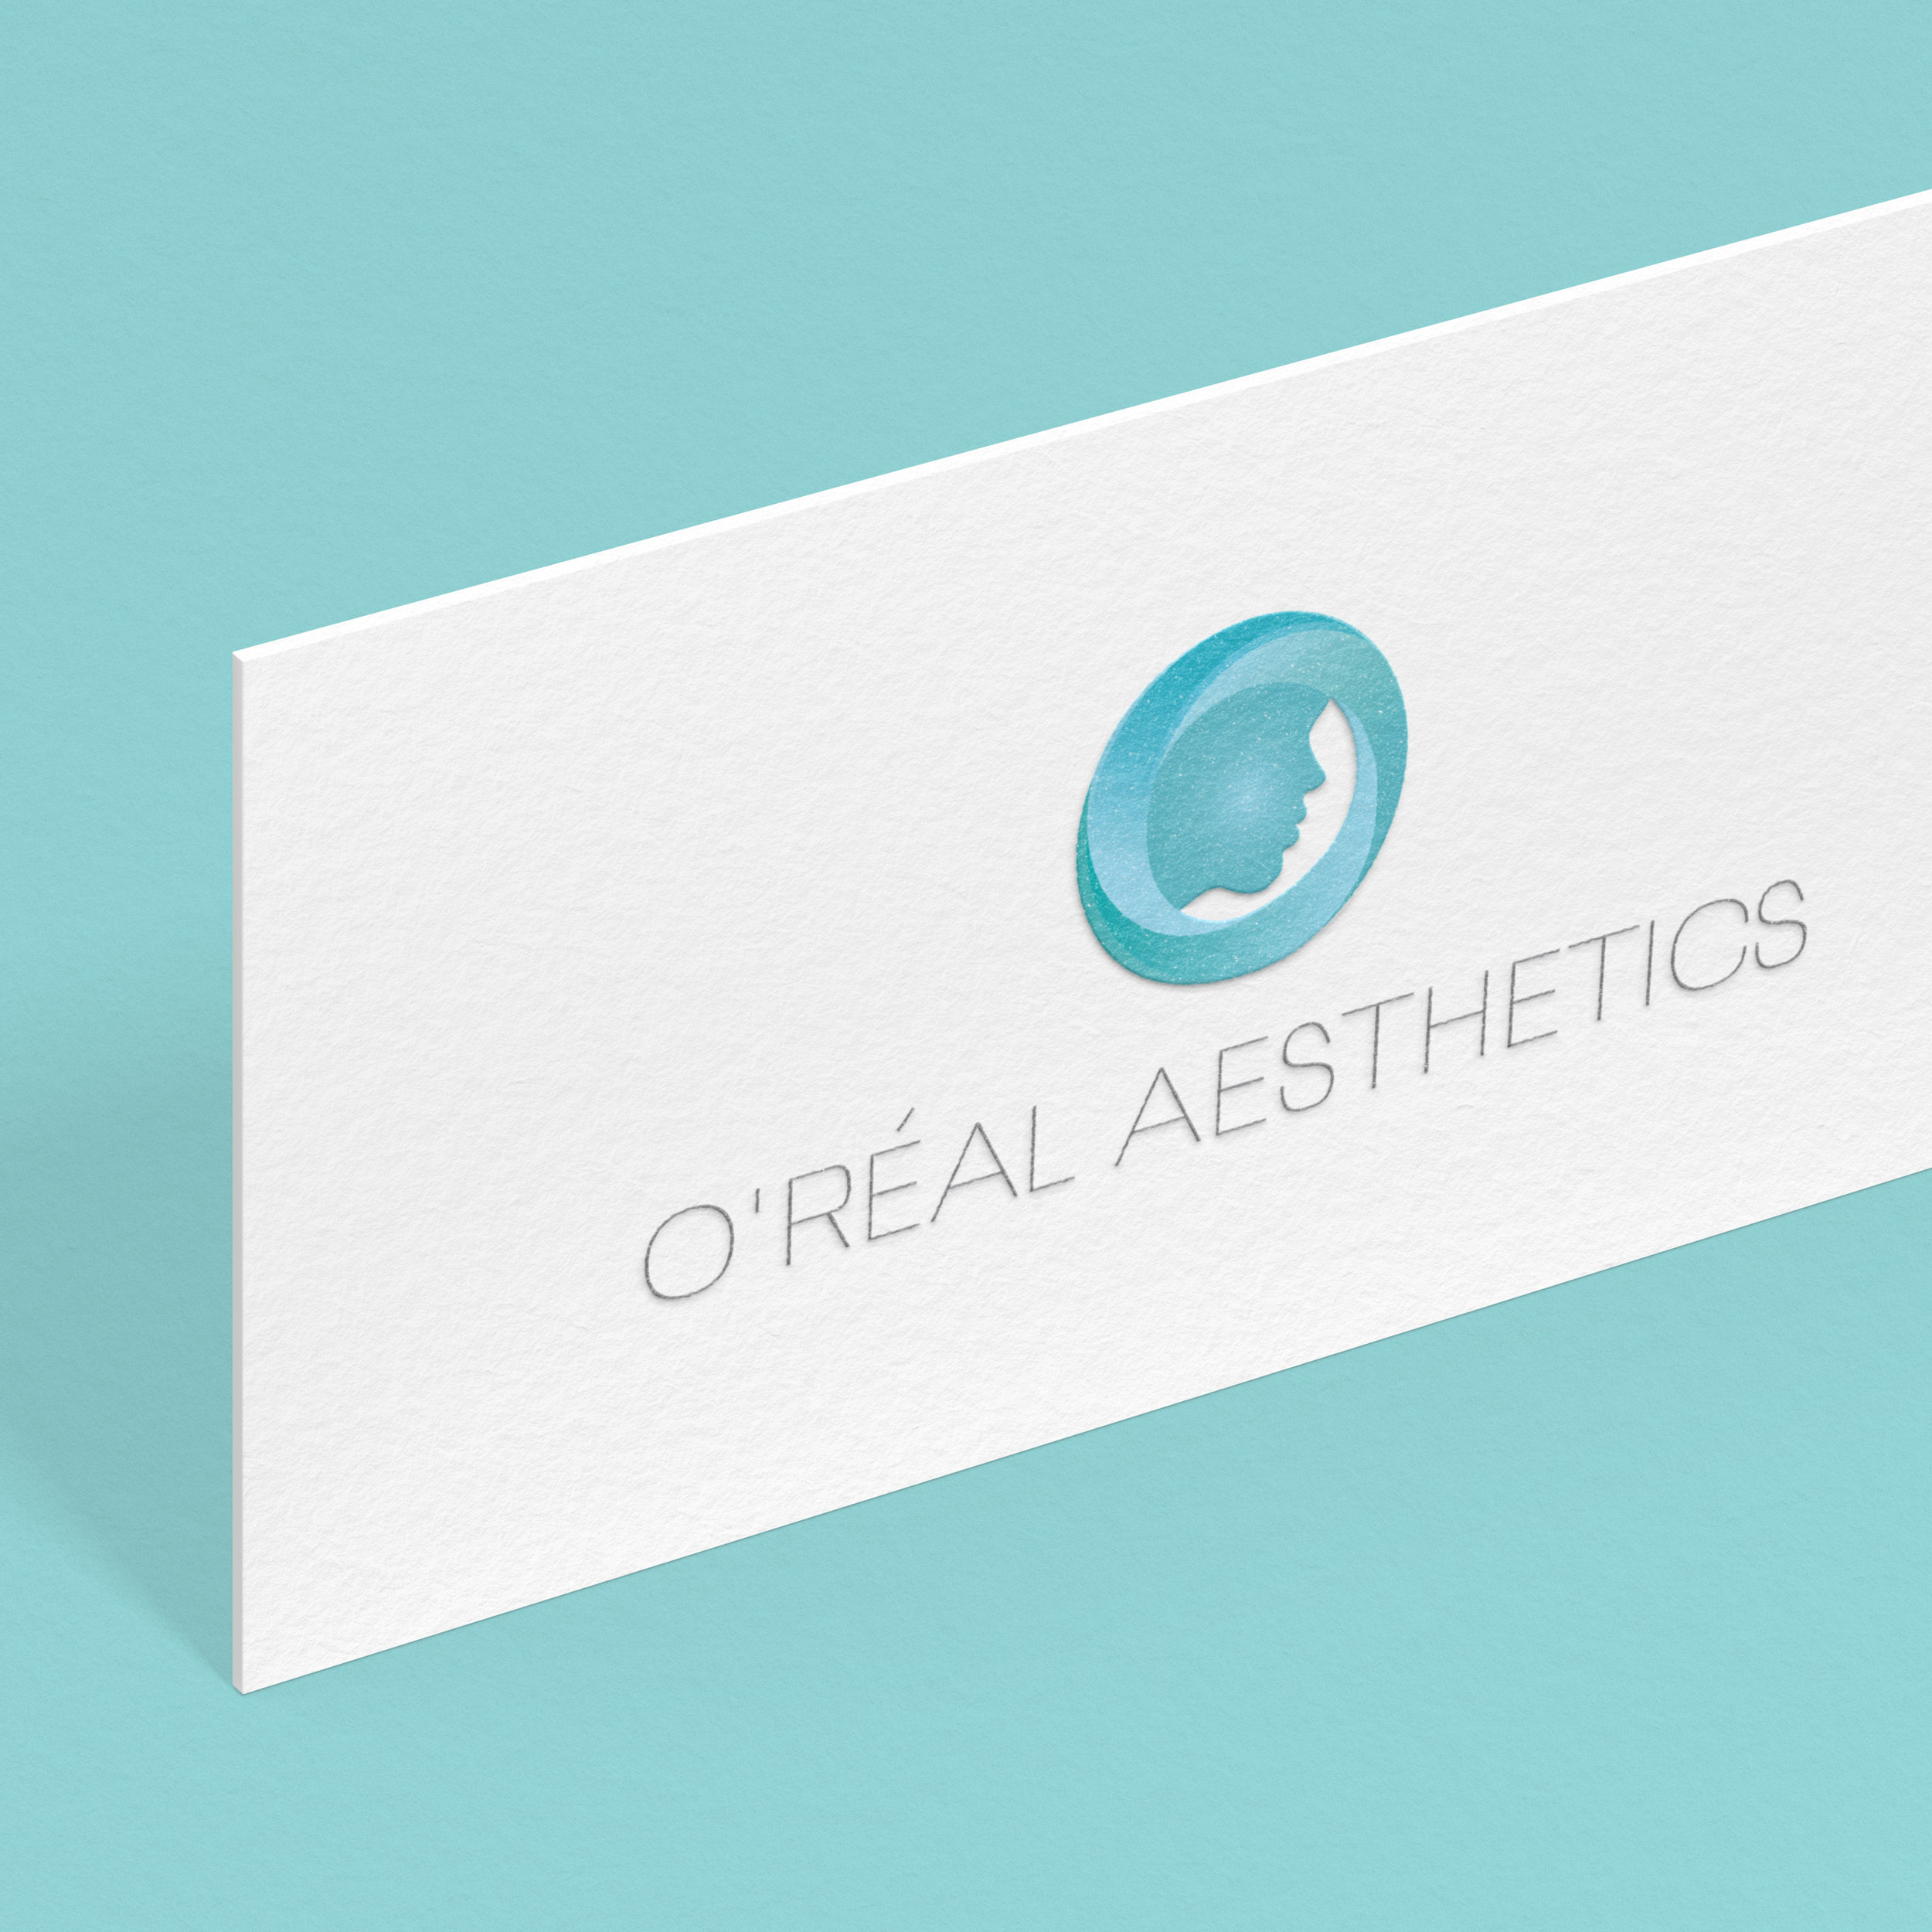 O'Real Aesthetics Logo Design